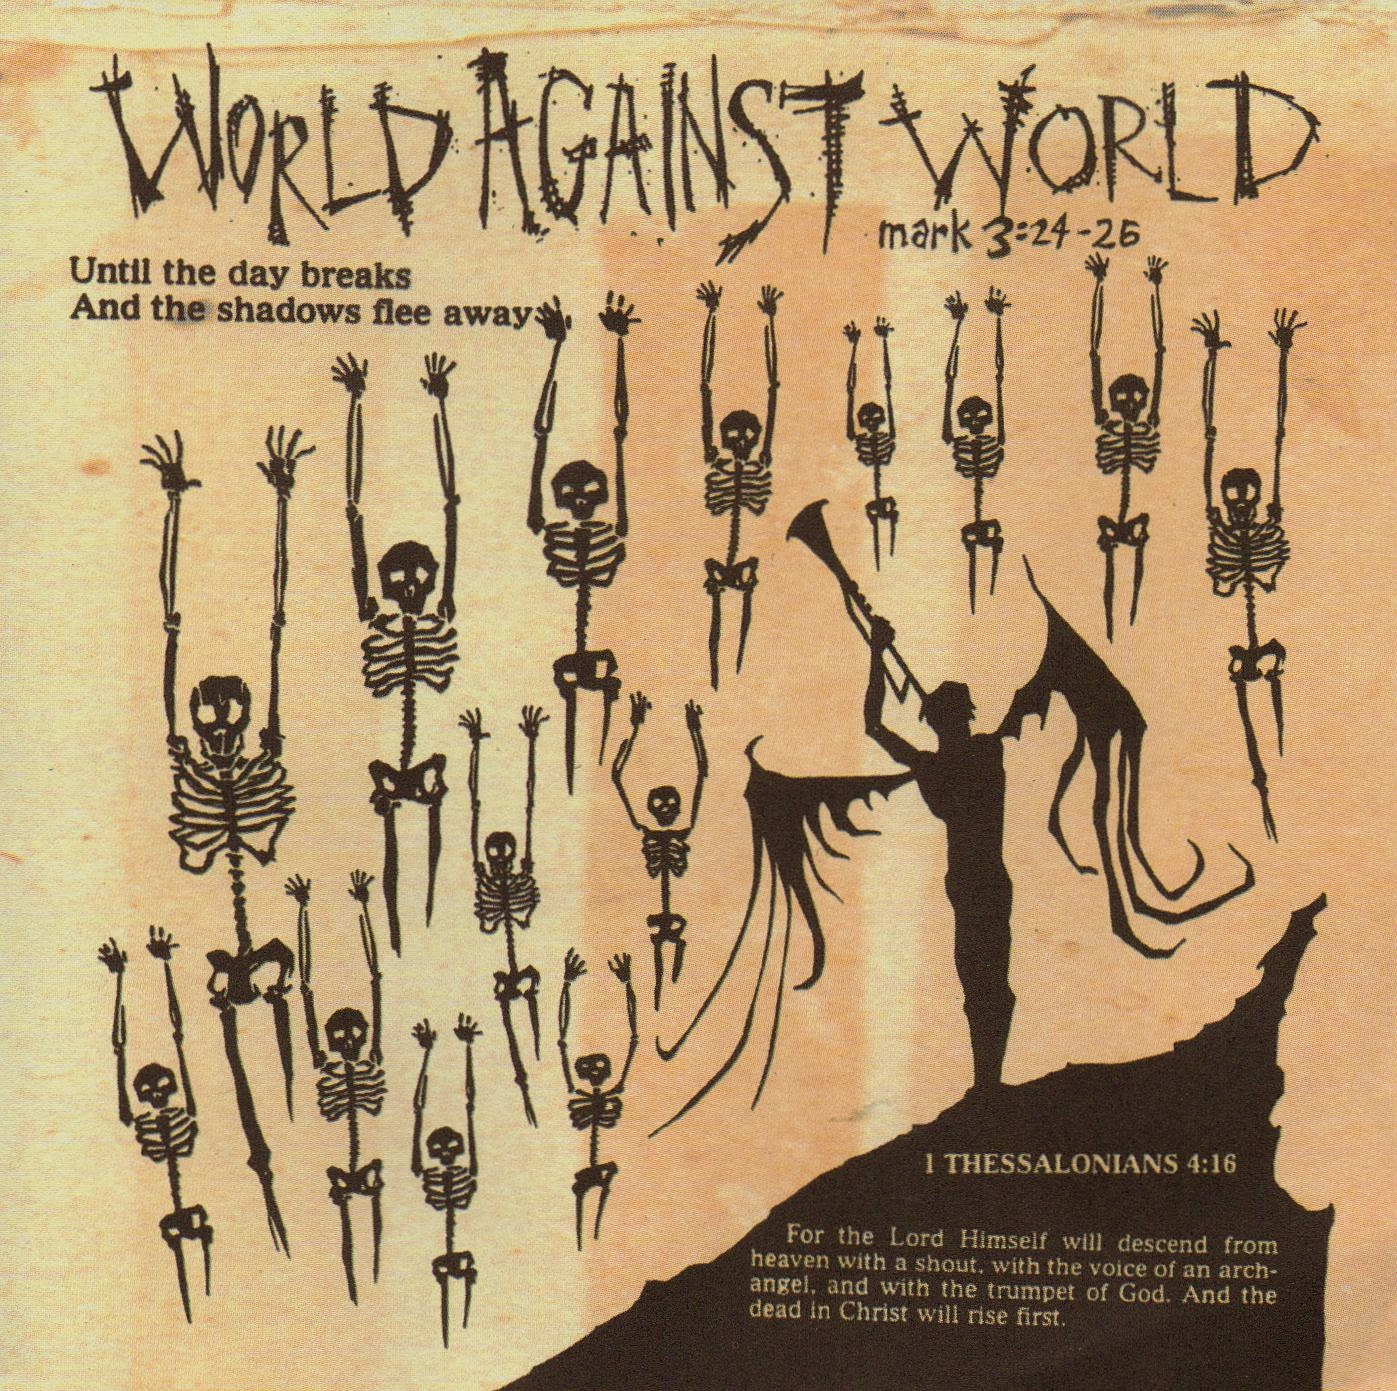 World Against World